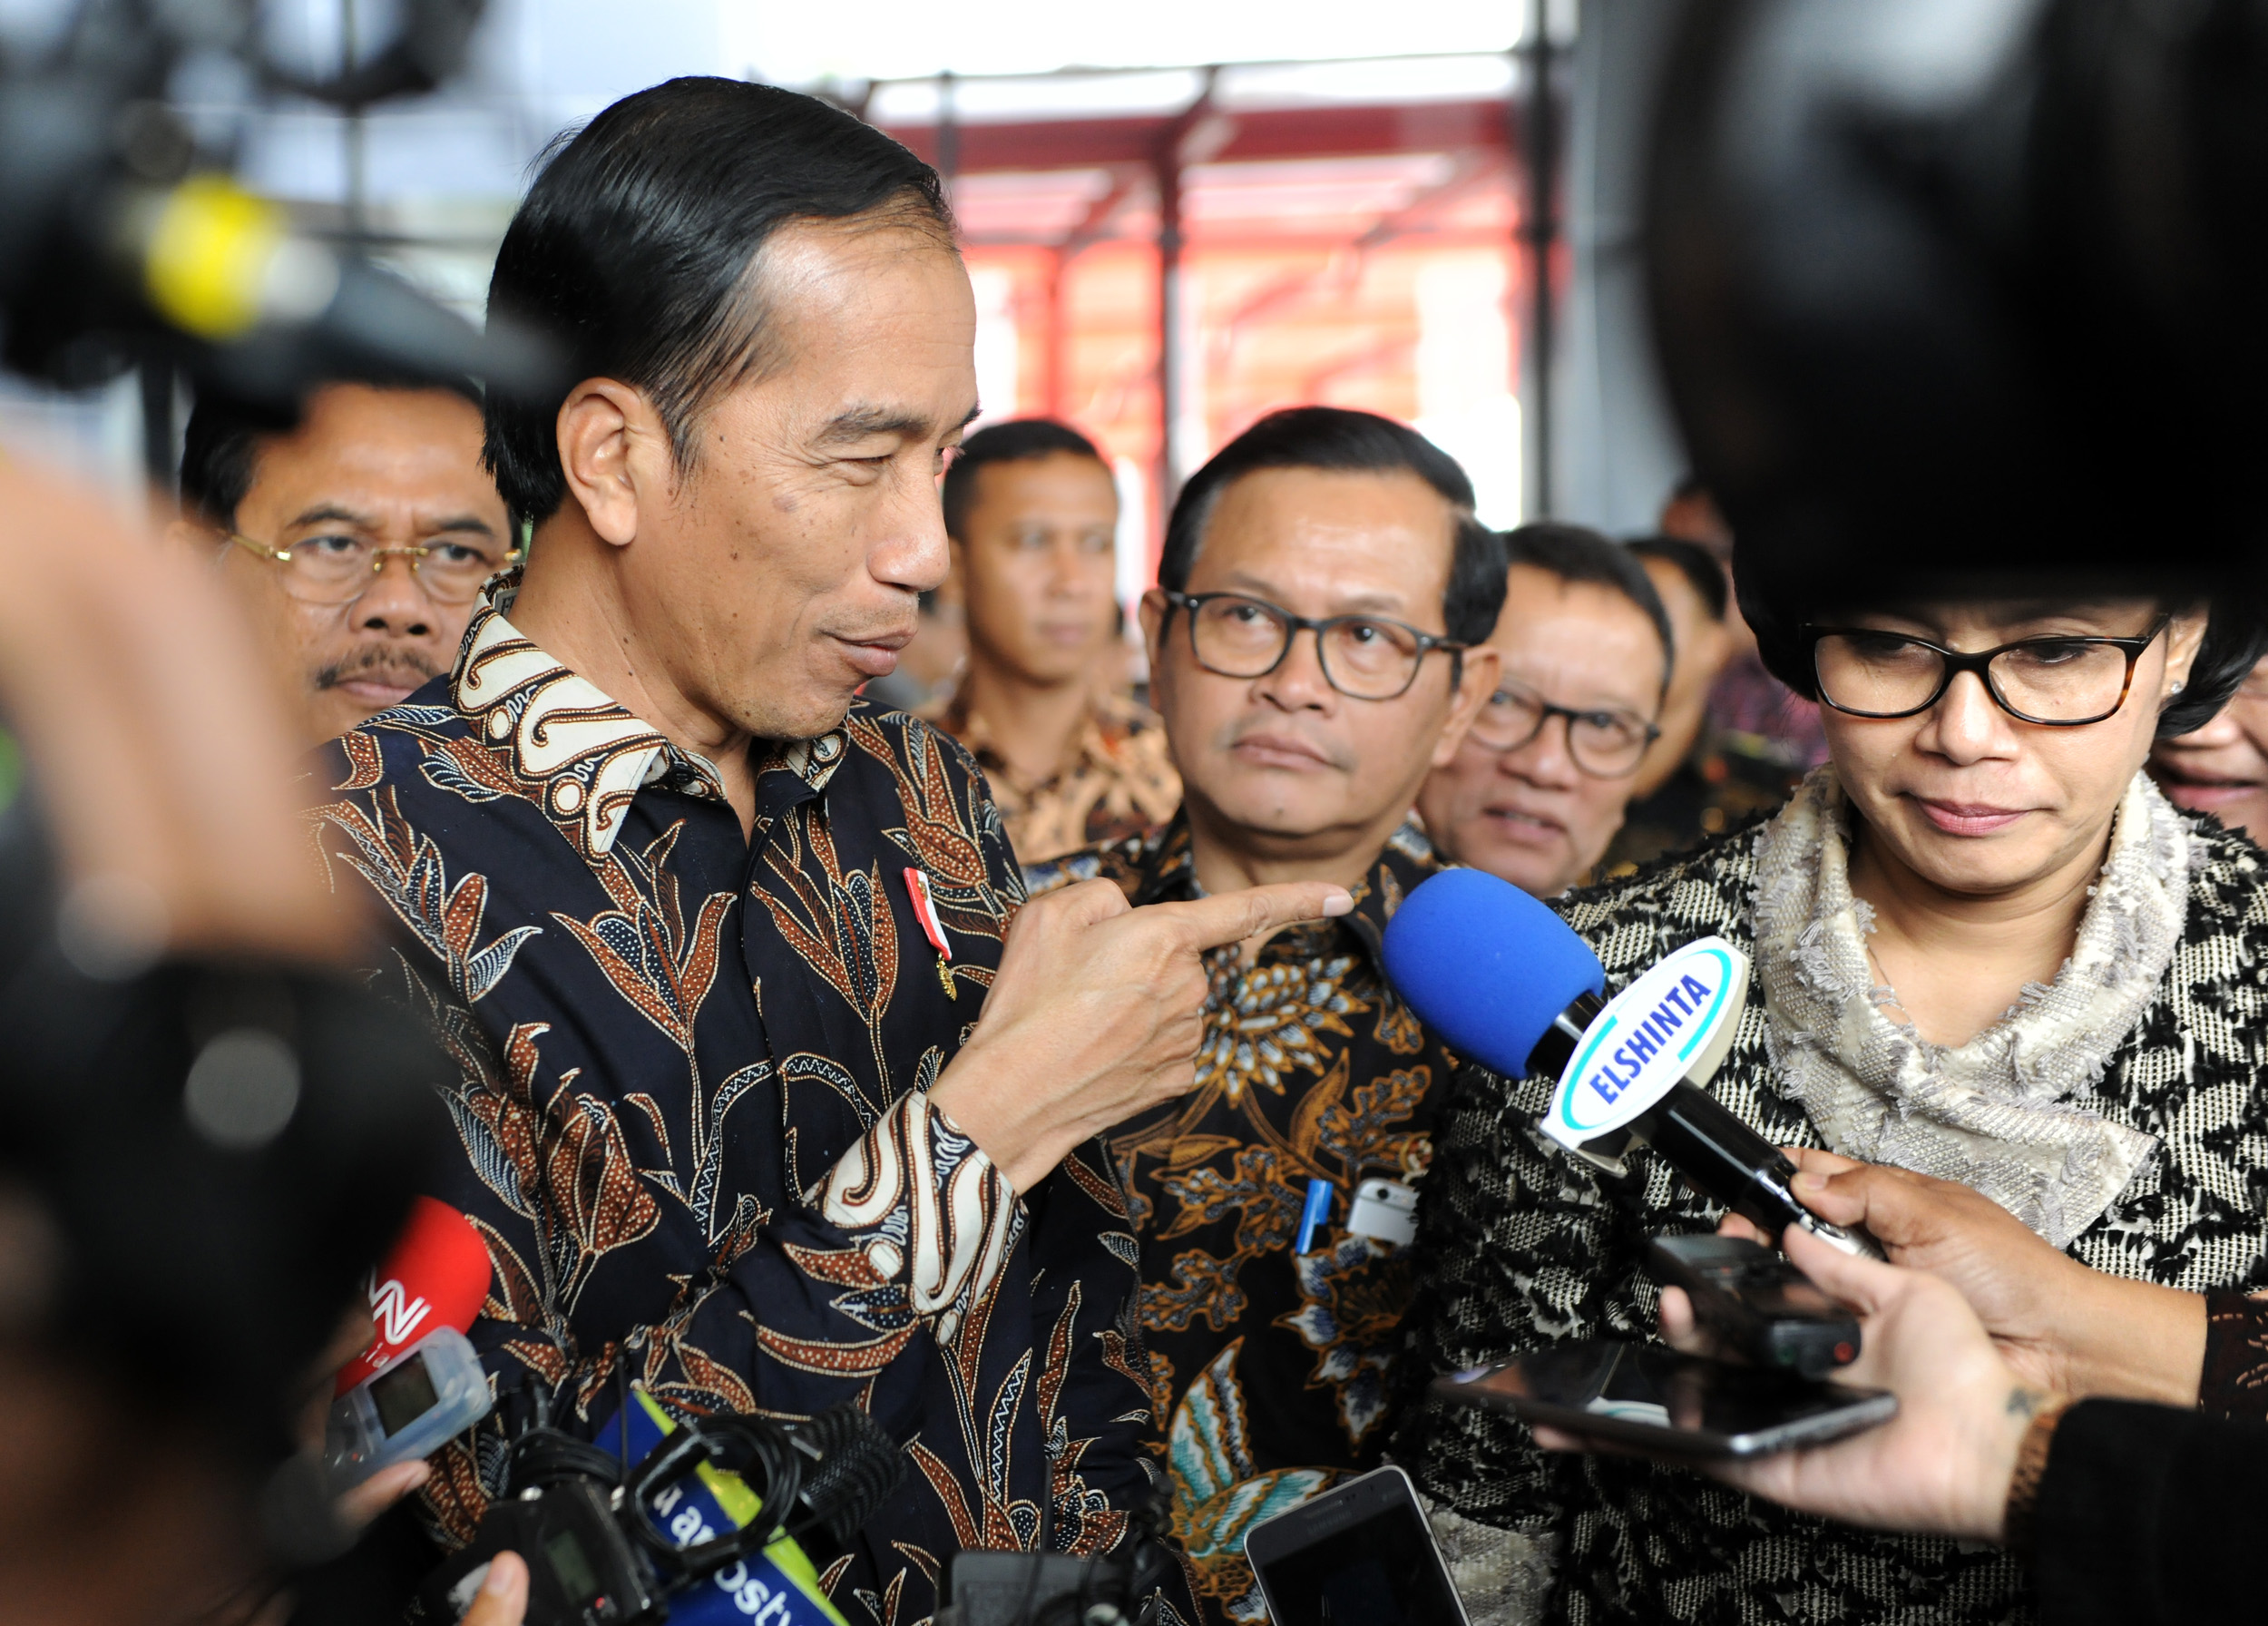 President Jokowi responds to reporters' questions after Dissemination of Final Phase of Tax Amnesty Program on Tuesday (28/2), at the JI Expo, Kemayoran, Jakarta